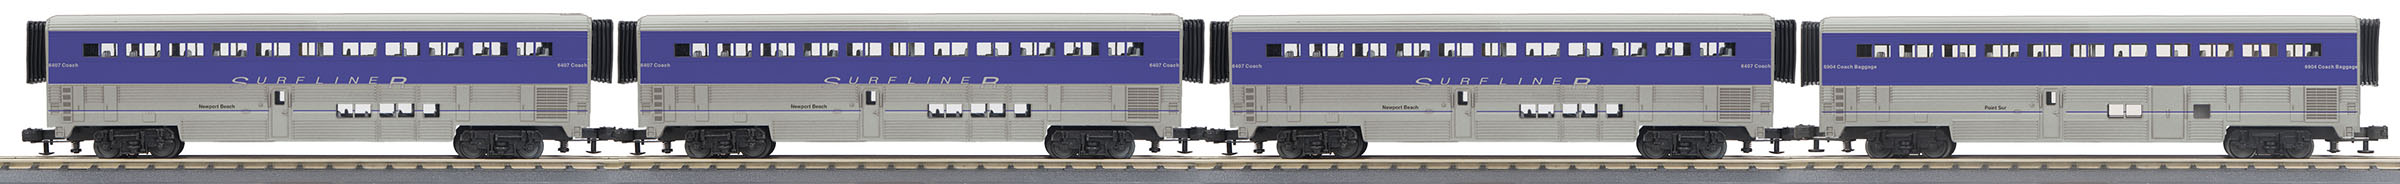 MTH306532 MTH Electric Trains O-31 SuperLiner Set,Amtrak/Surfliner/PointSur#6904